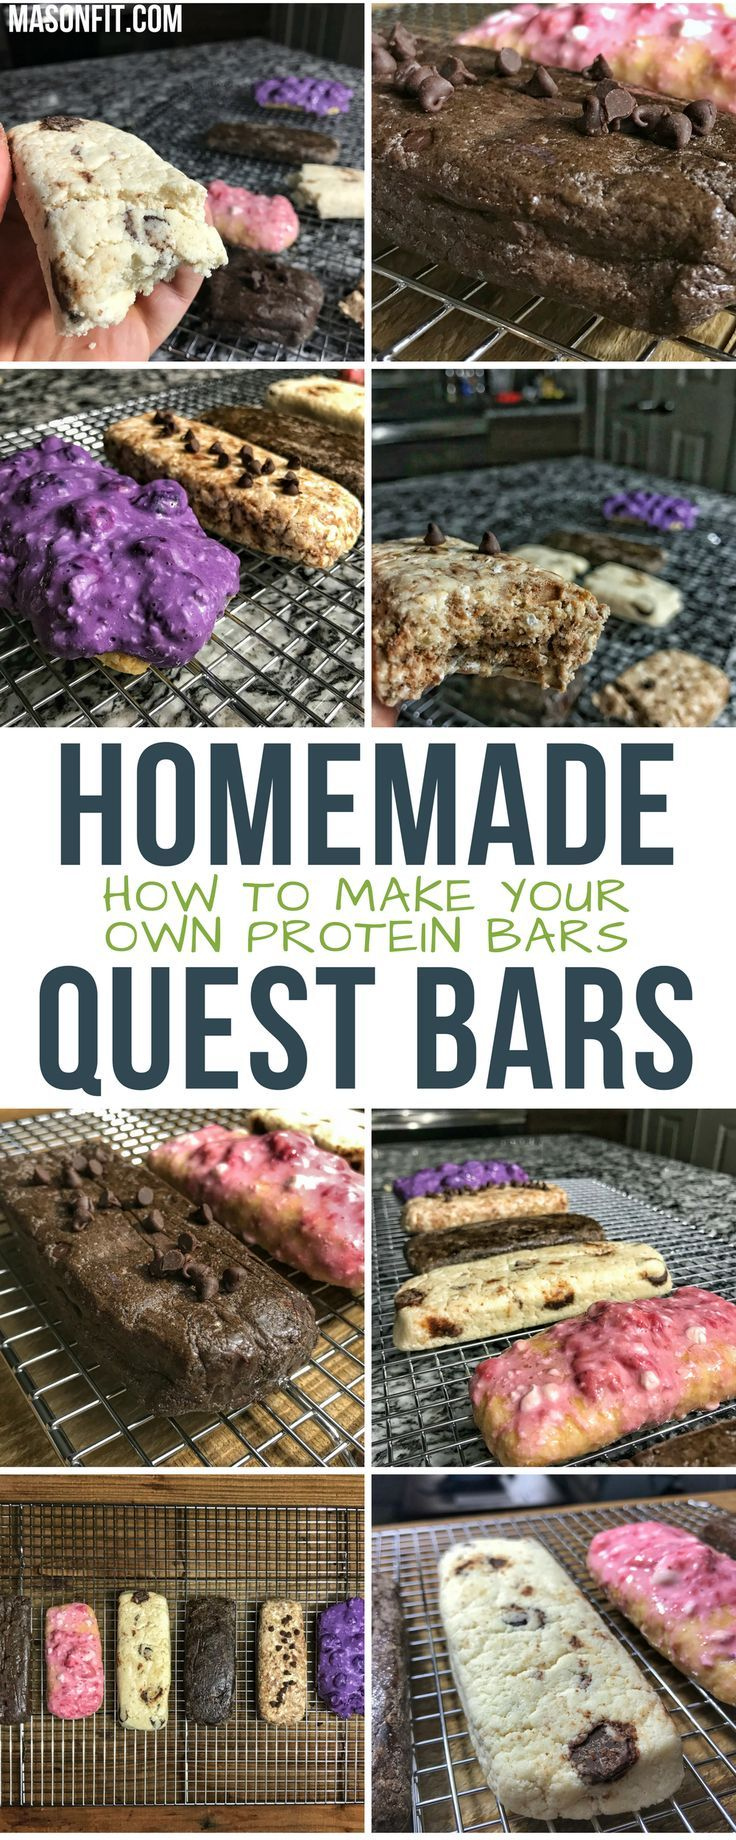 If you've ever wondered how to make your own protein bars that don't taste like rubber, you'll love these homemade quest protein bars. They're no bake and take less than 5 minutes to make. You can get creative with flavors, but you'll find double chocolat